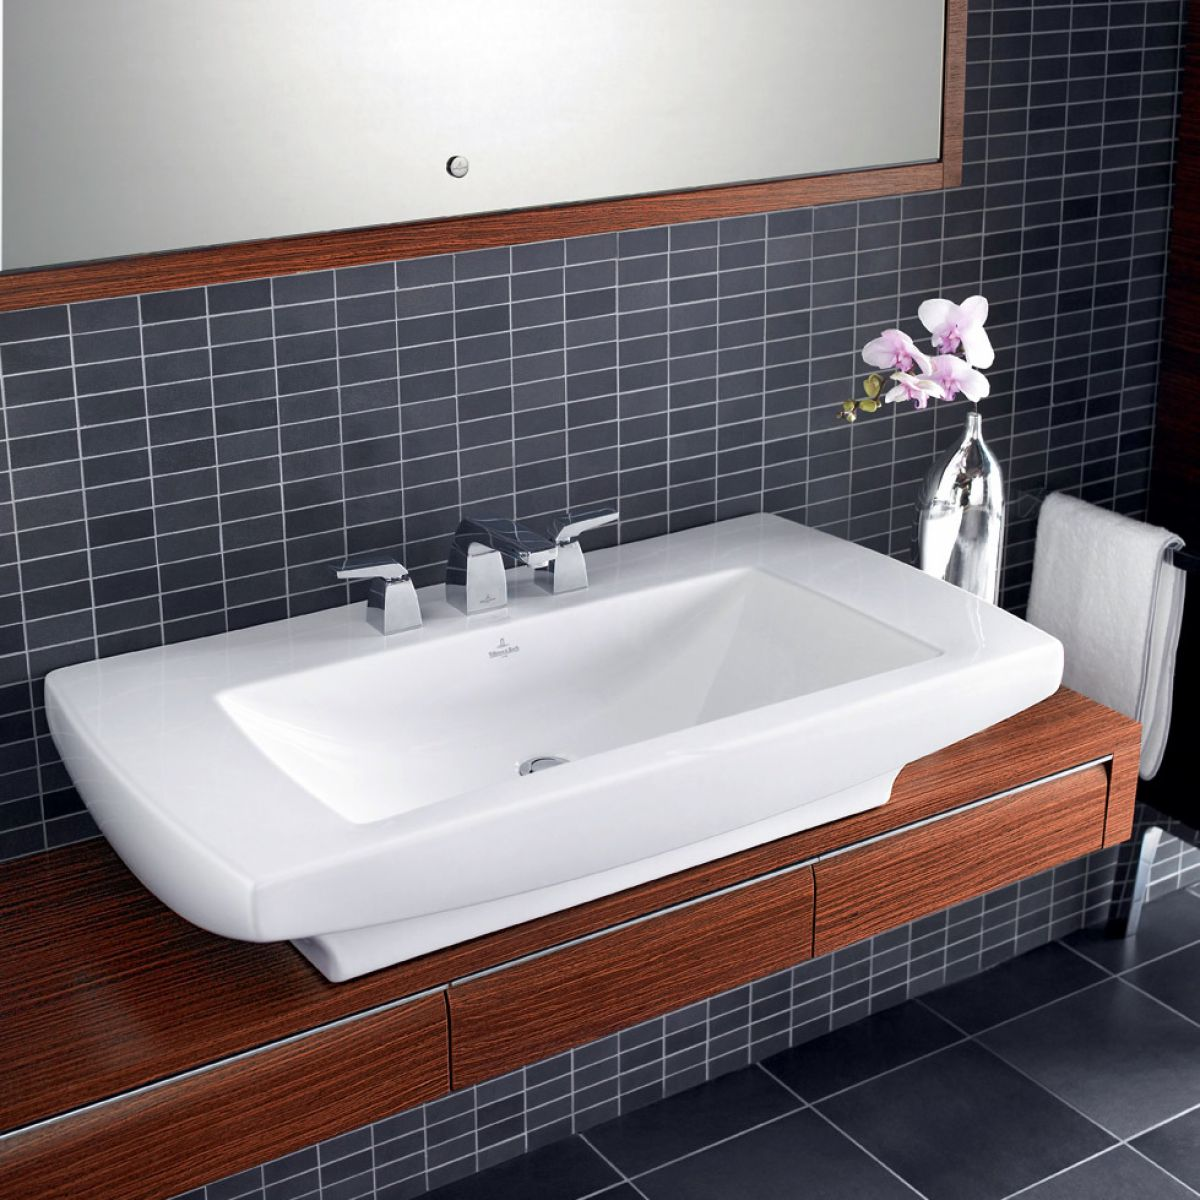 villeroy boch bernina mosaic tiles 2411 33 x - Villeroy And Boch Baths